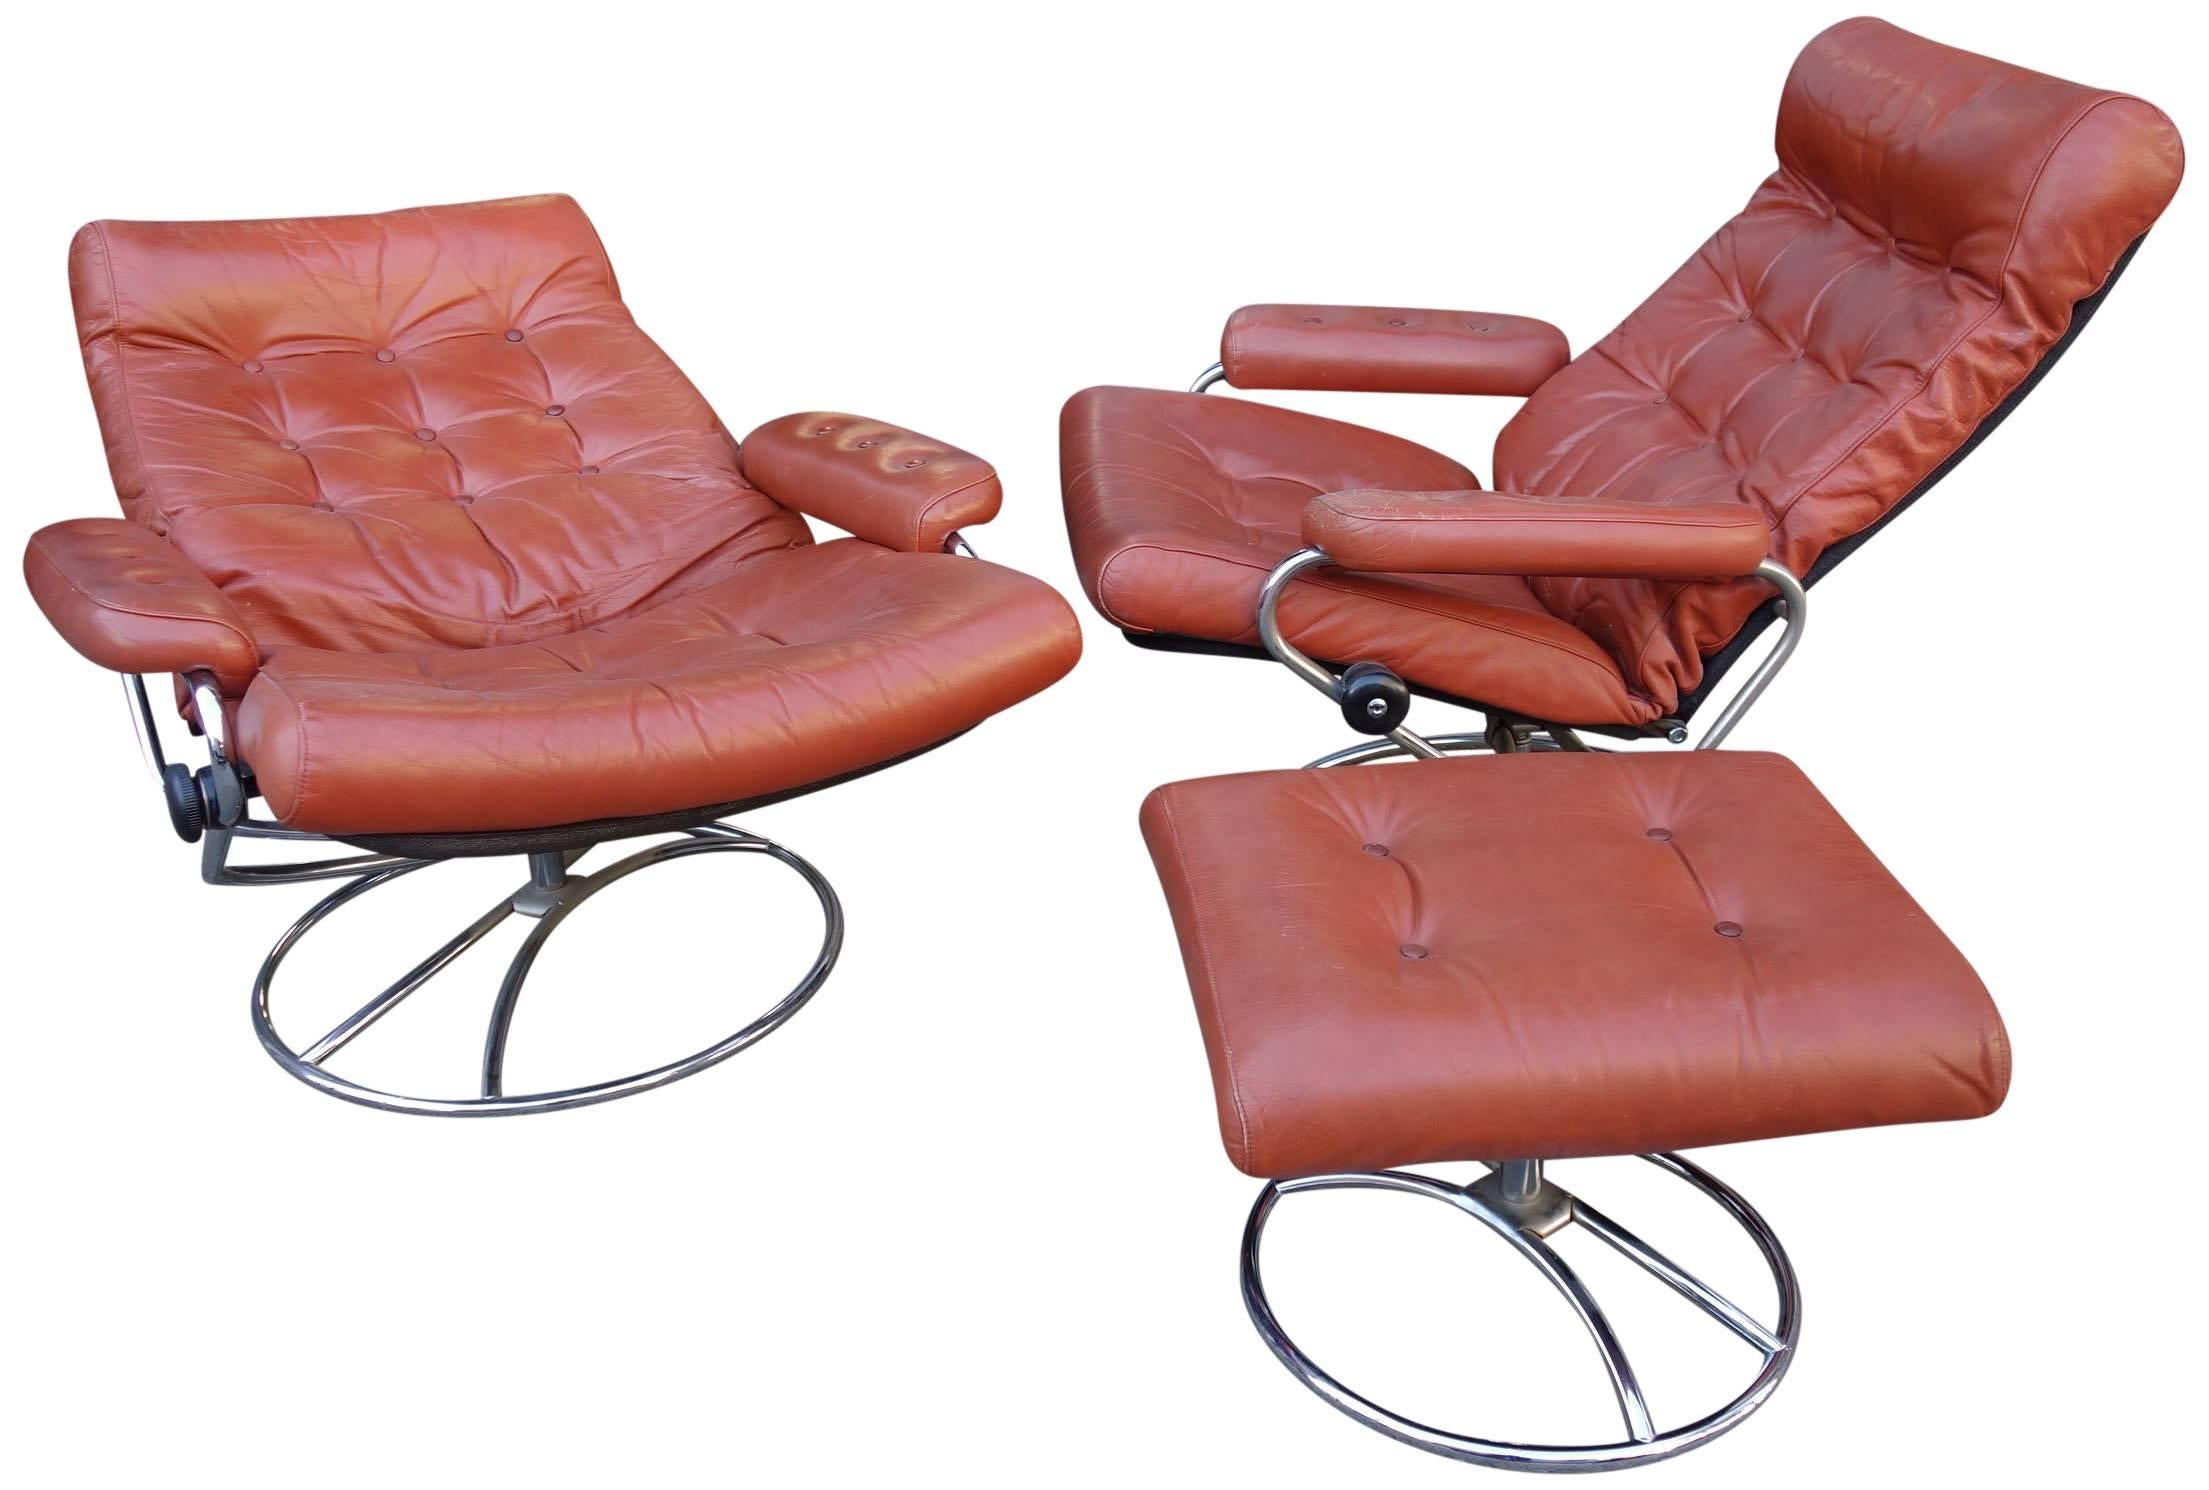 Midcentury Reclining Stress Less Lounge Chairs And Ottoman By Ekornes In  Good Condition For Sale In